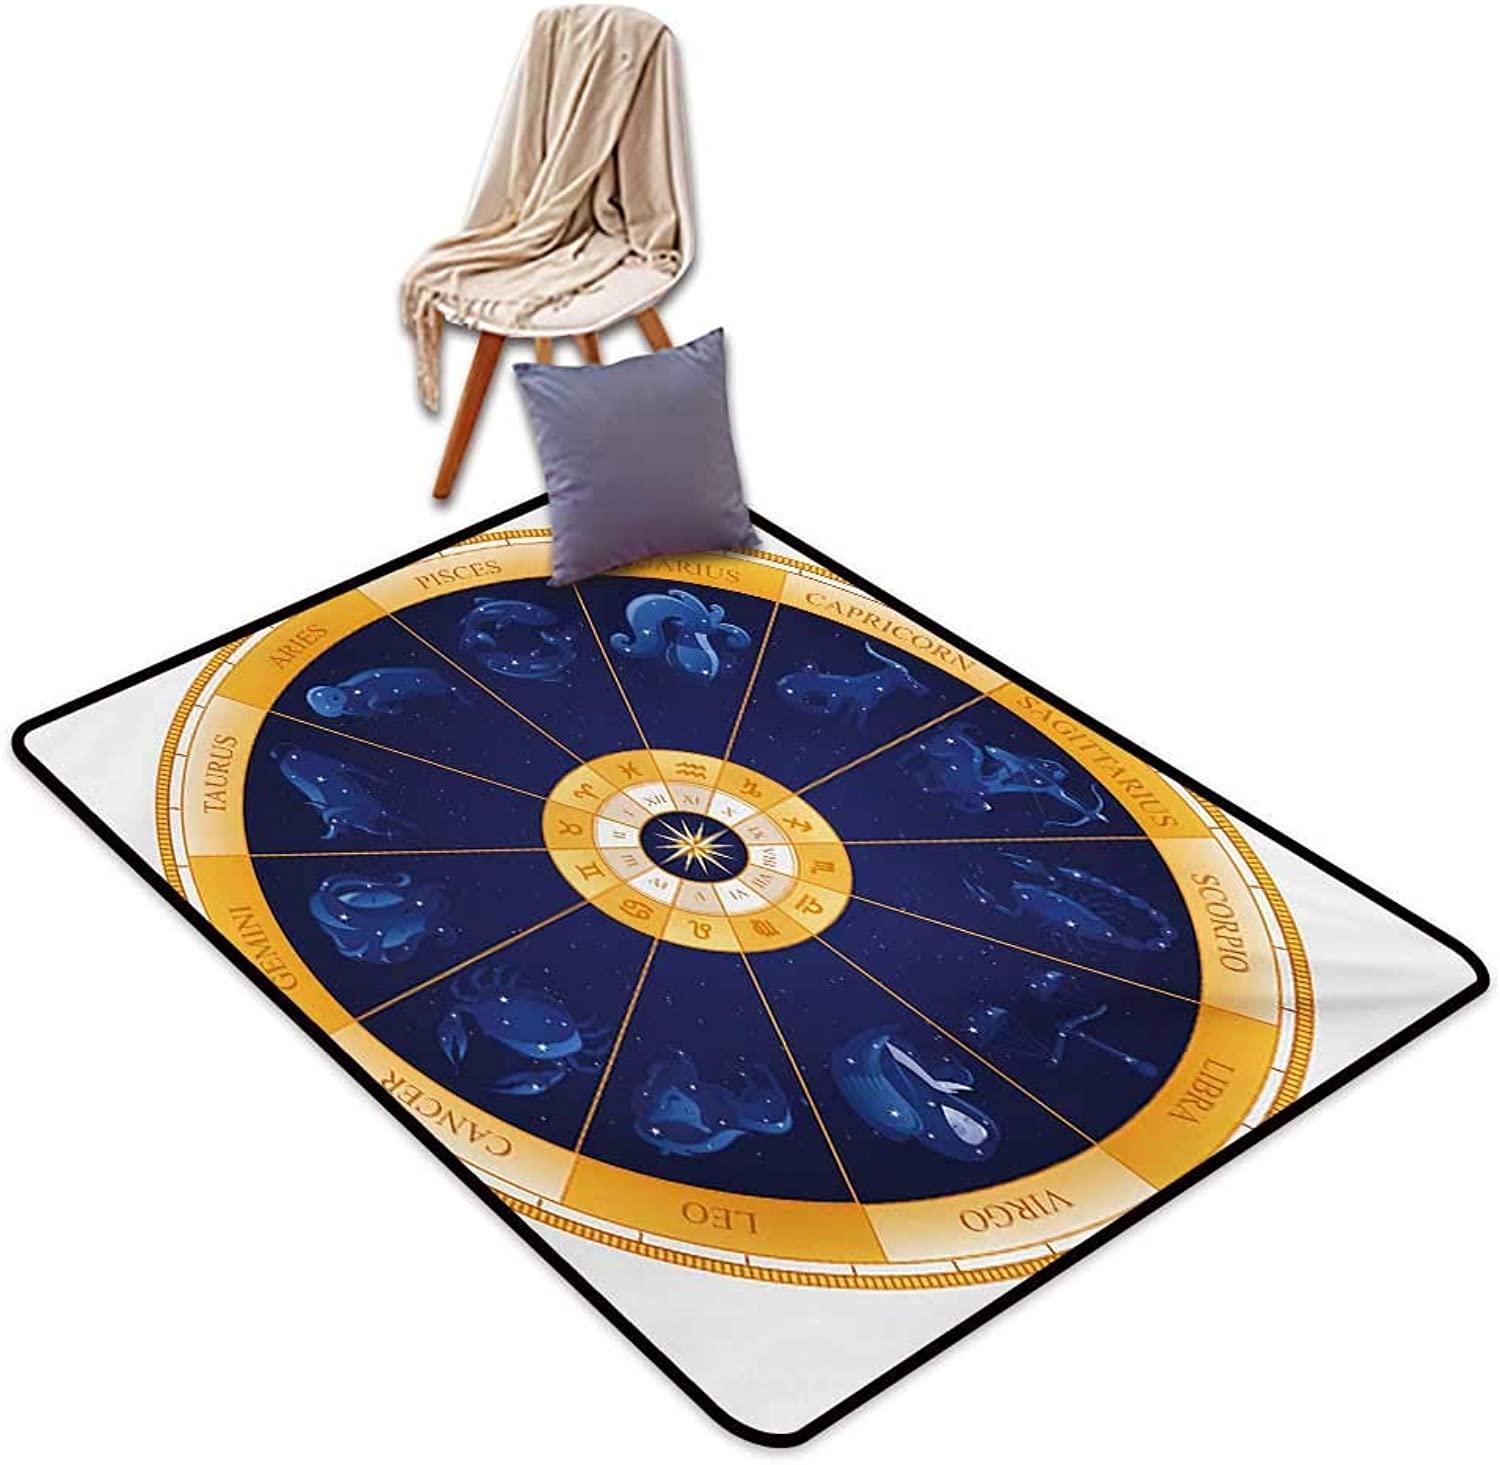 Astrology Indoor Super Absorbs Mud Doormat Natal Birth Chart Zodiac Hgoldscope Signs in Wheel Shape with Dots Stars Water Absorption, Anti-Skid and Oil Proof 55  Wx63 L bluee White orange